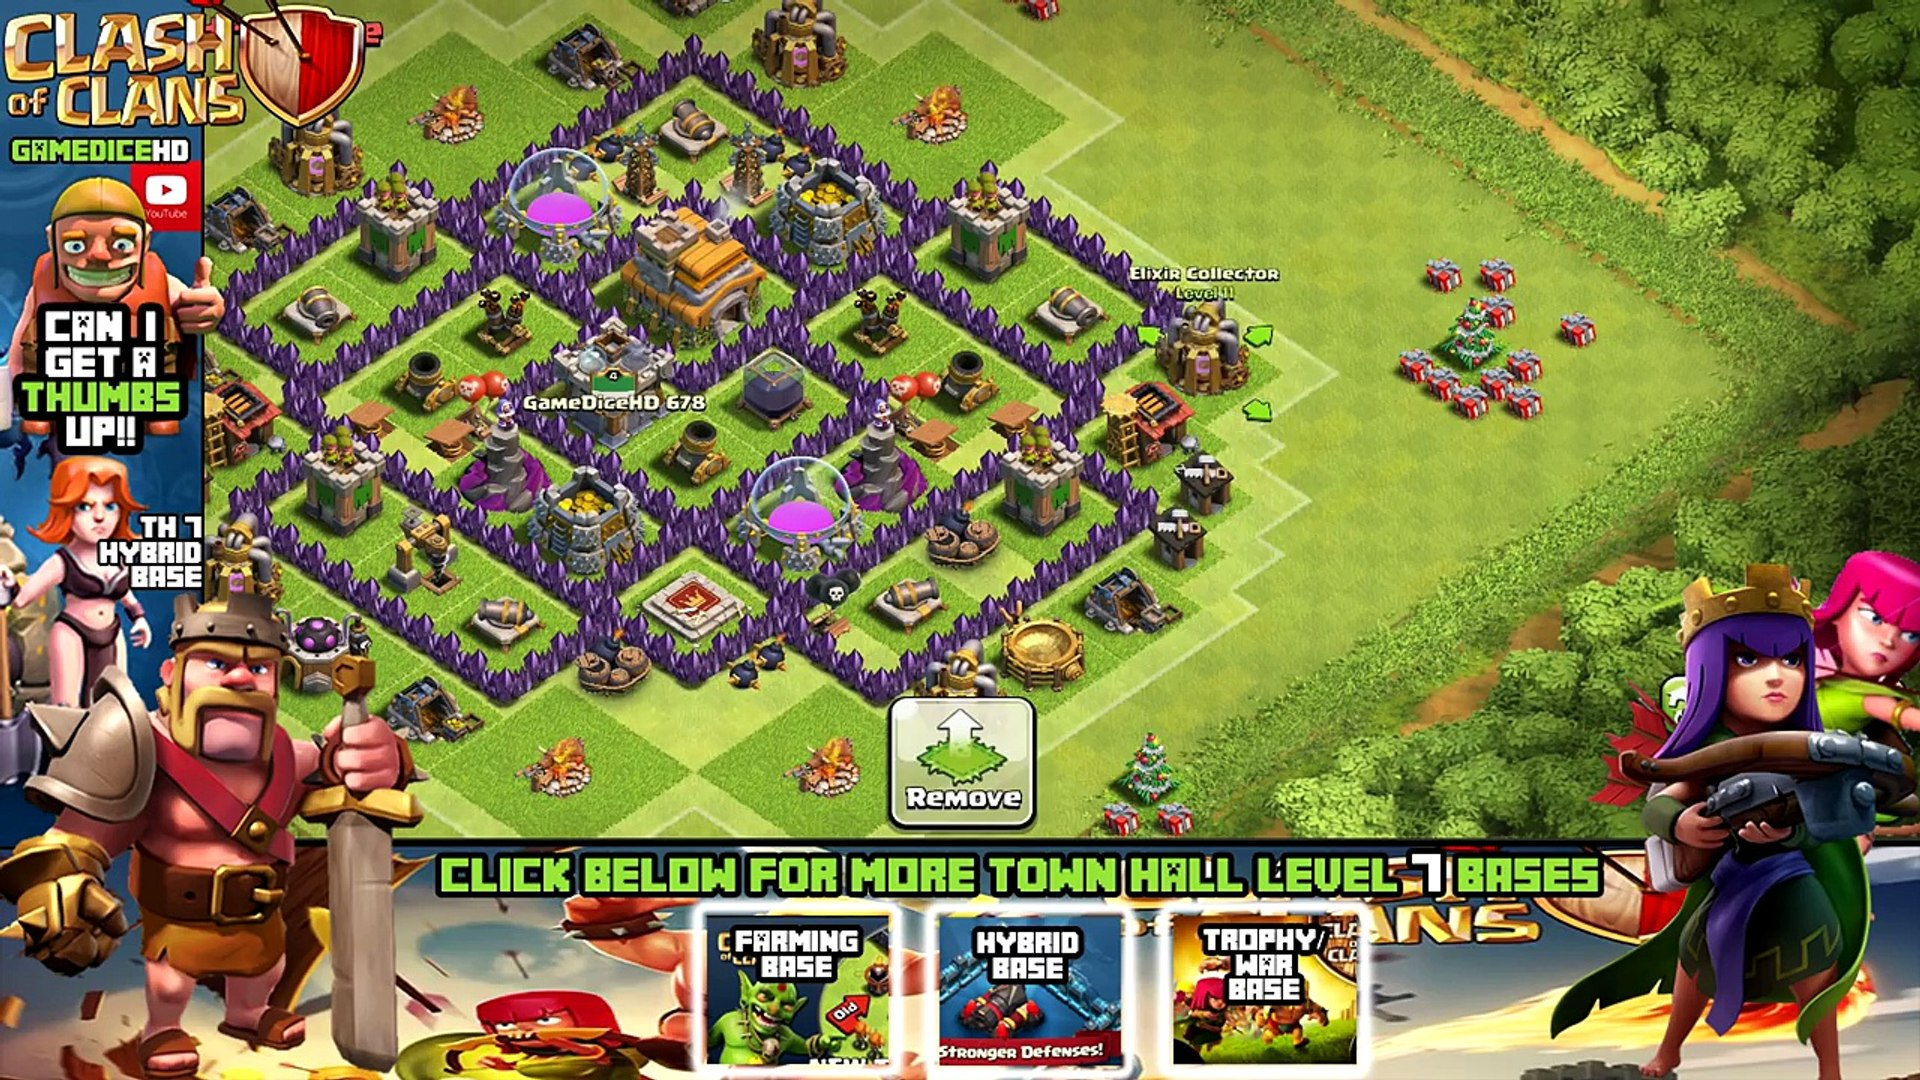 CLASH OF CLANS - TH7 FARMING BASE BEST TOWN HALL 7 Defense With NEW DARK  ELIXIR DRILL - Dailymotion Video